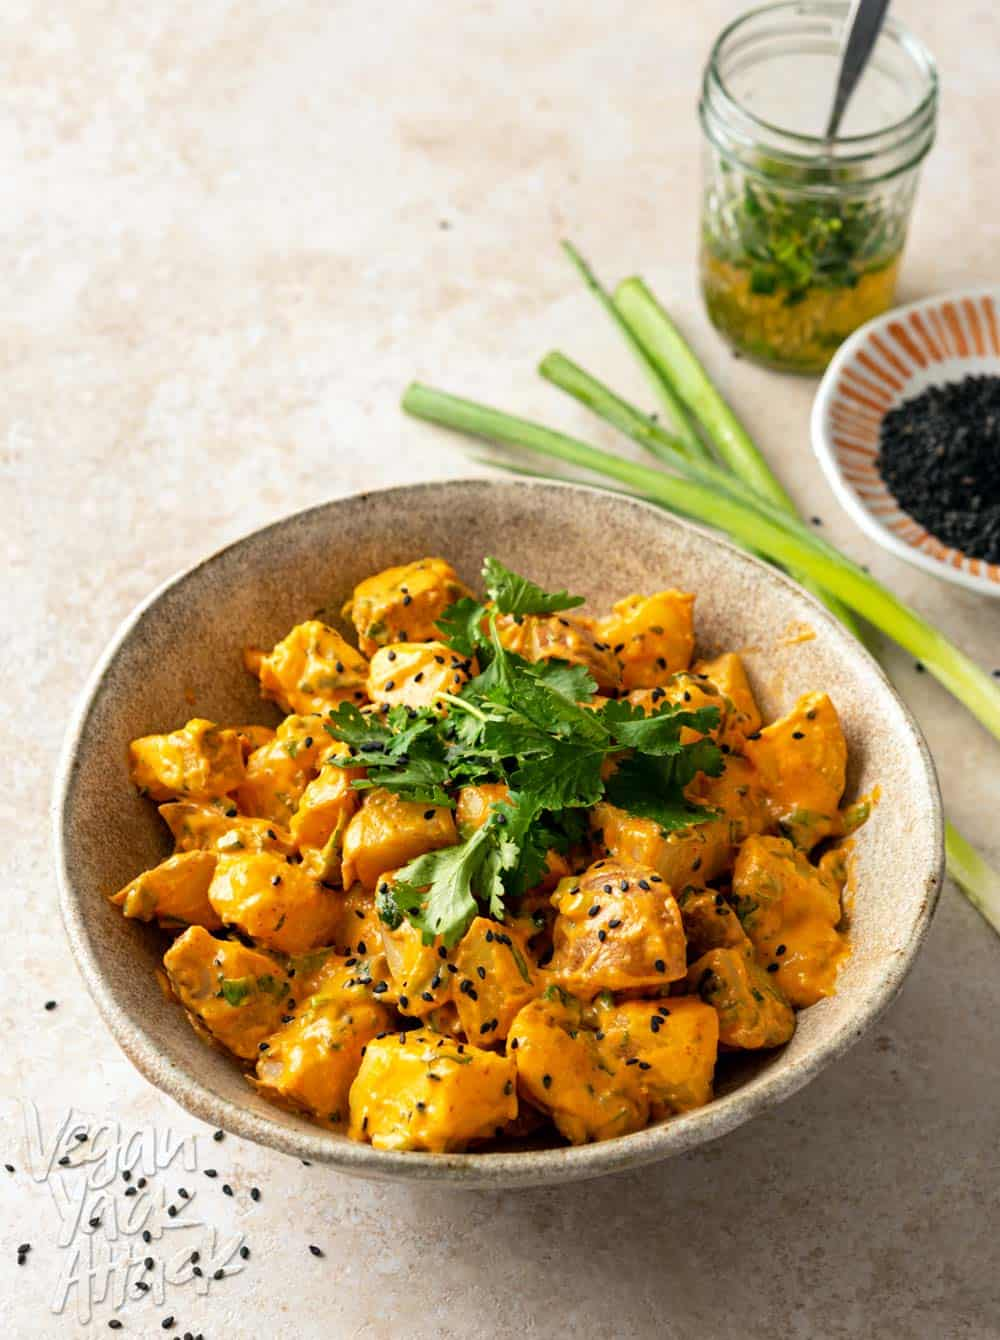 Large ceramic bowl filled with sriracha potato salad that is topped with sesame seeds and cilantro